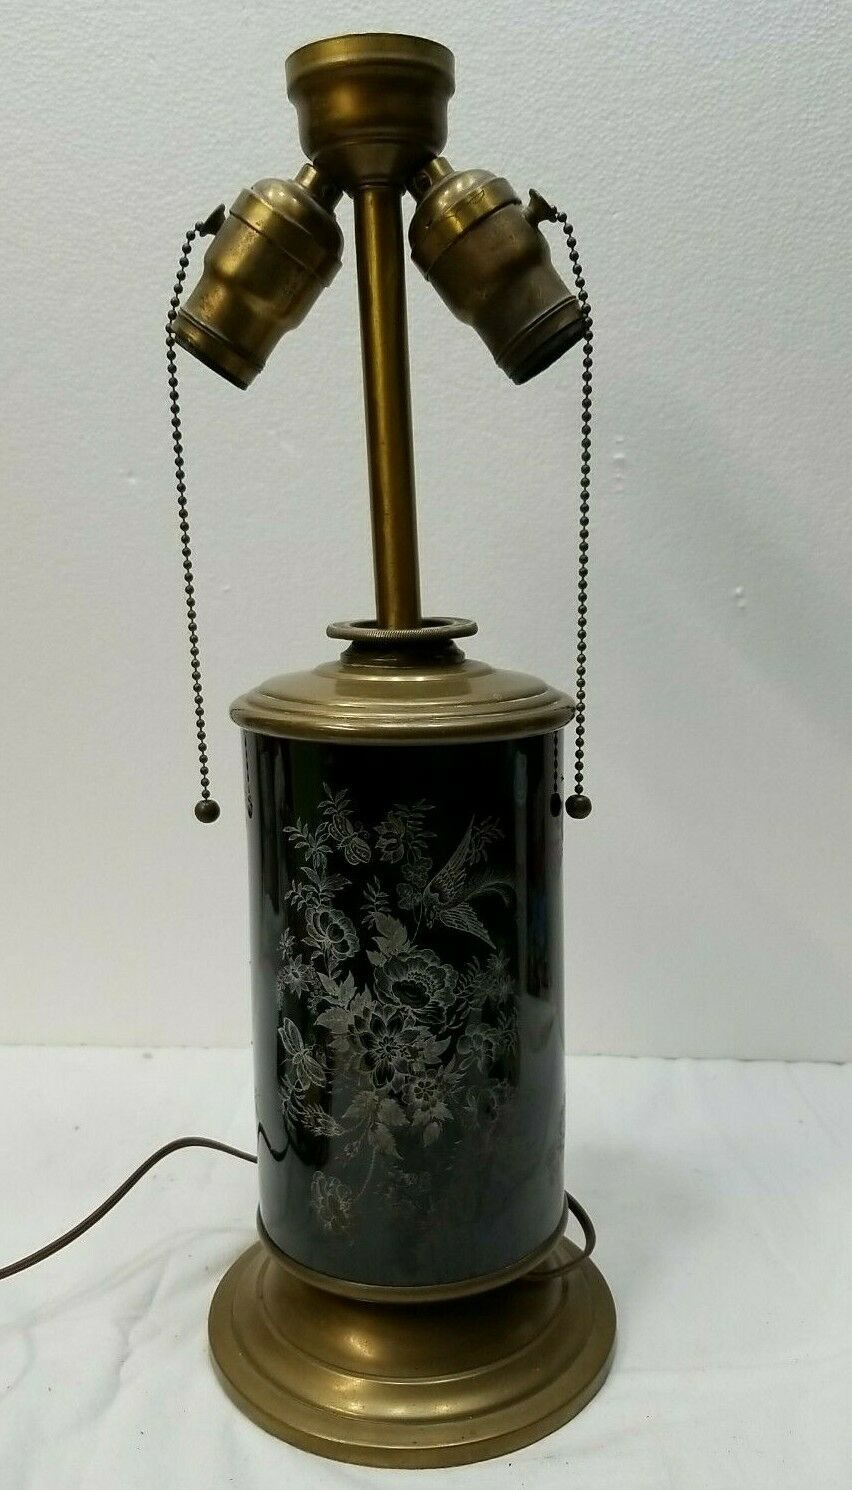 Antique Converted Plume & Atwood Oil Lamp, MUST SEE - UNIQUE